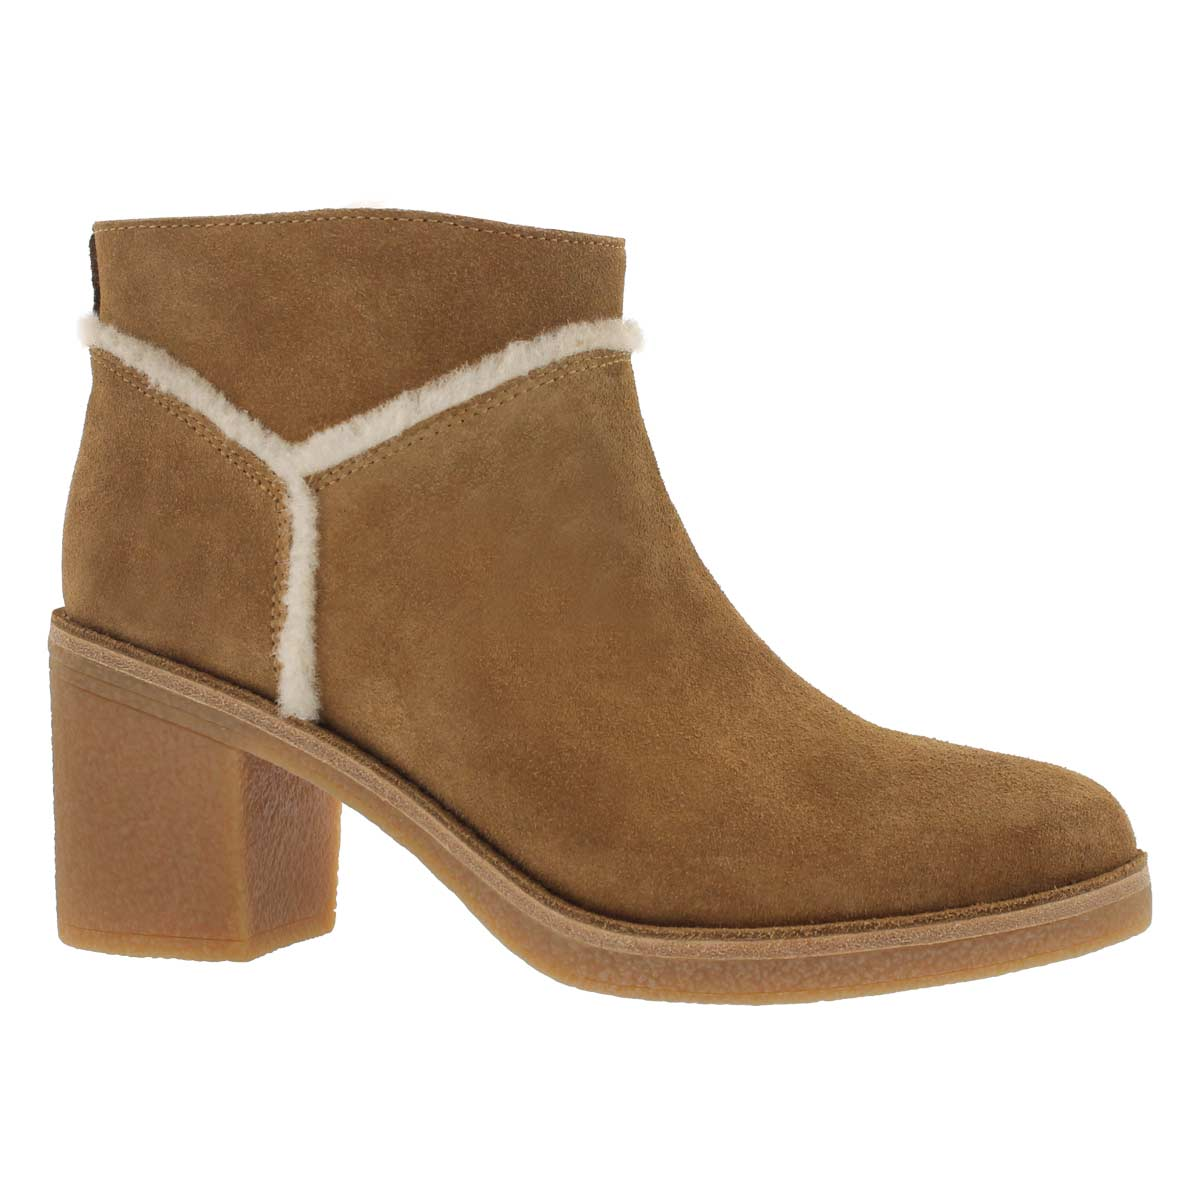 Women's KASEN chestnut casual ankle boots